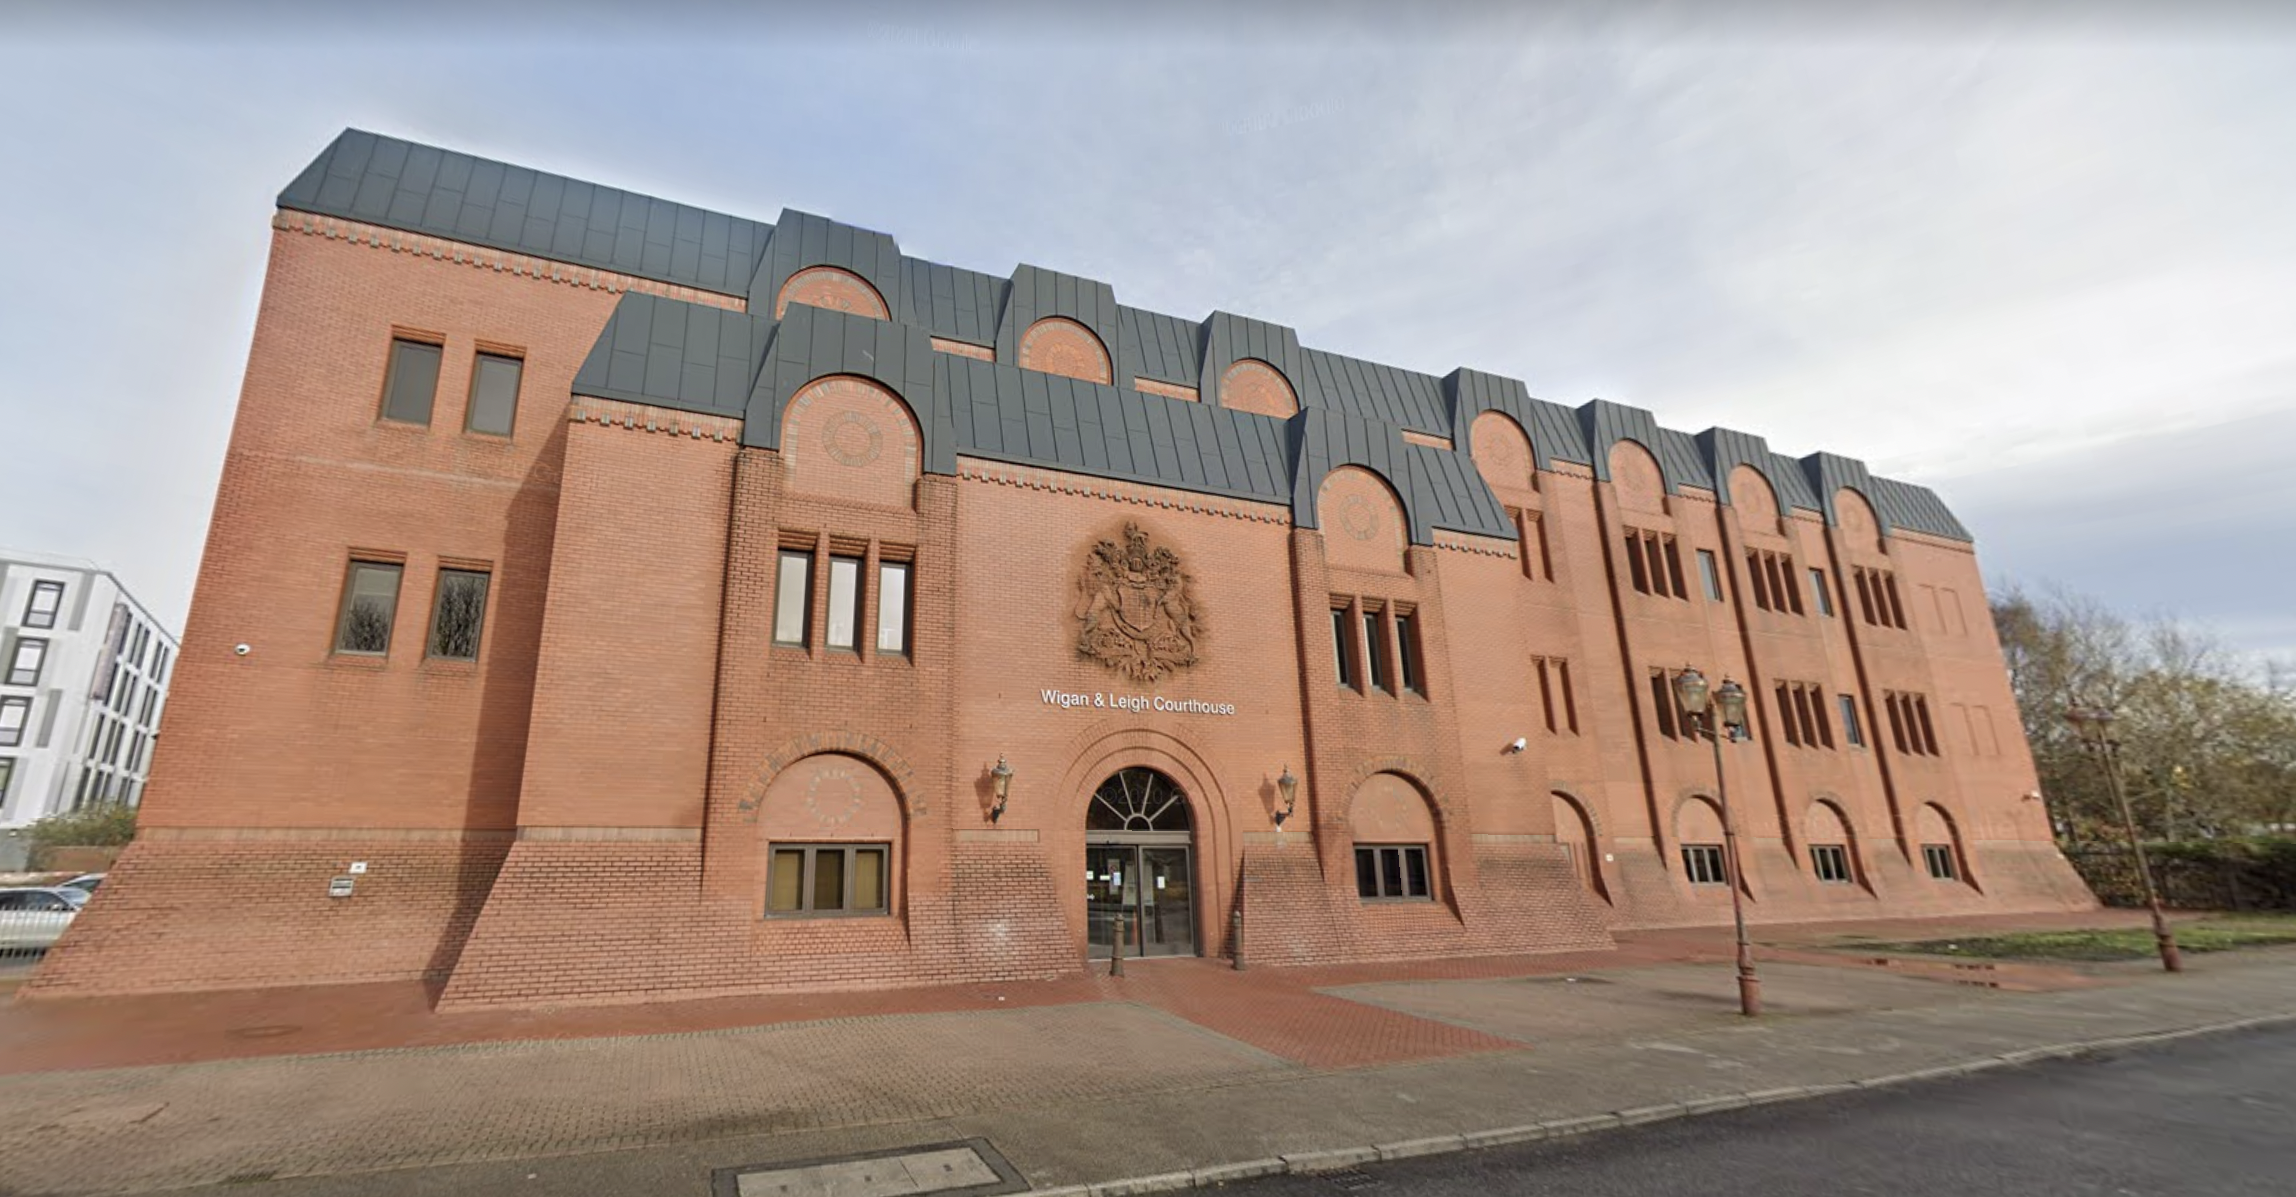 Wigan & Leigh Magistrates' Court